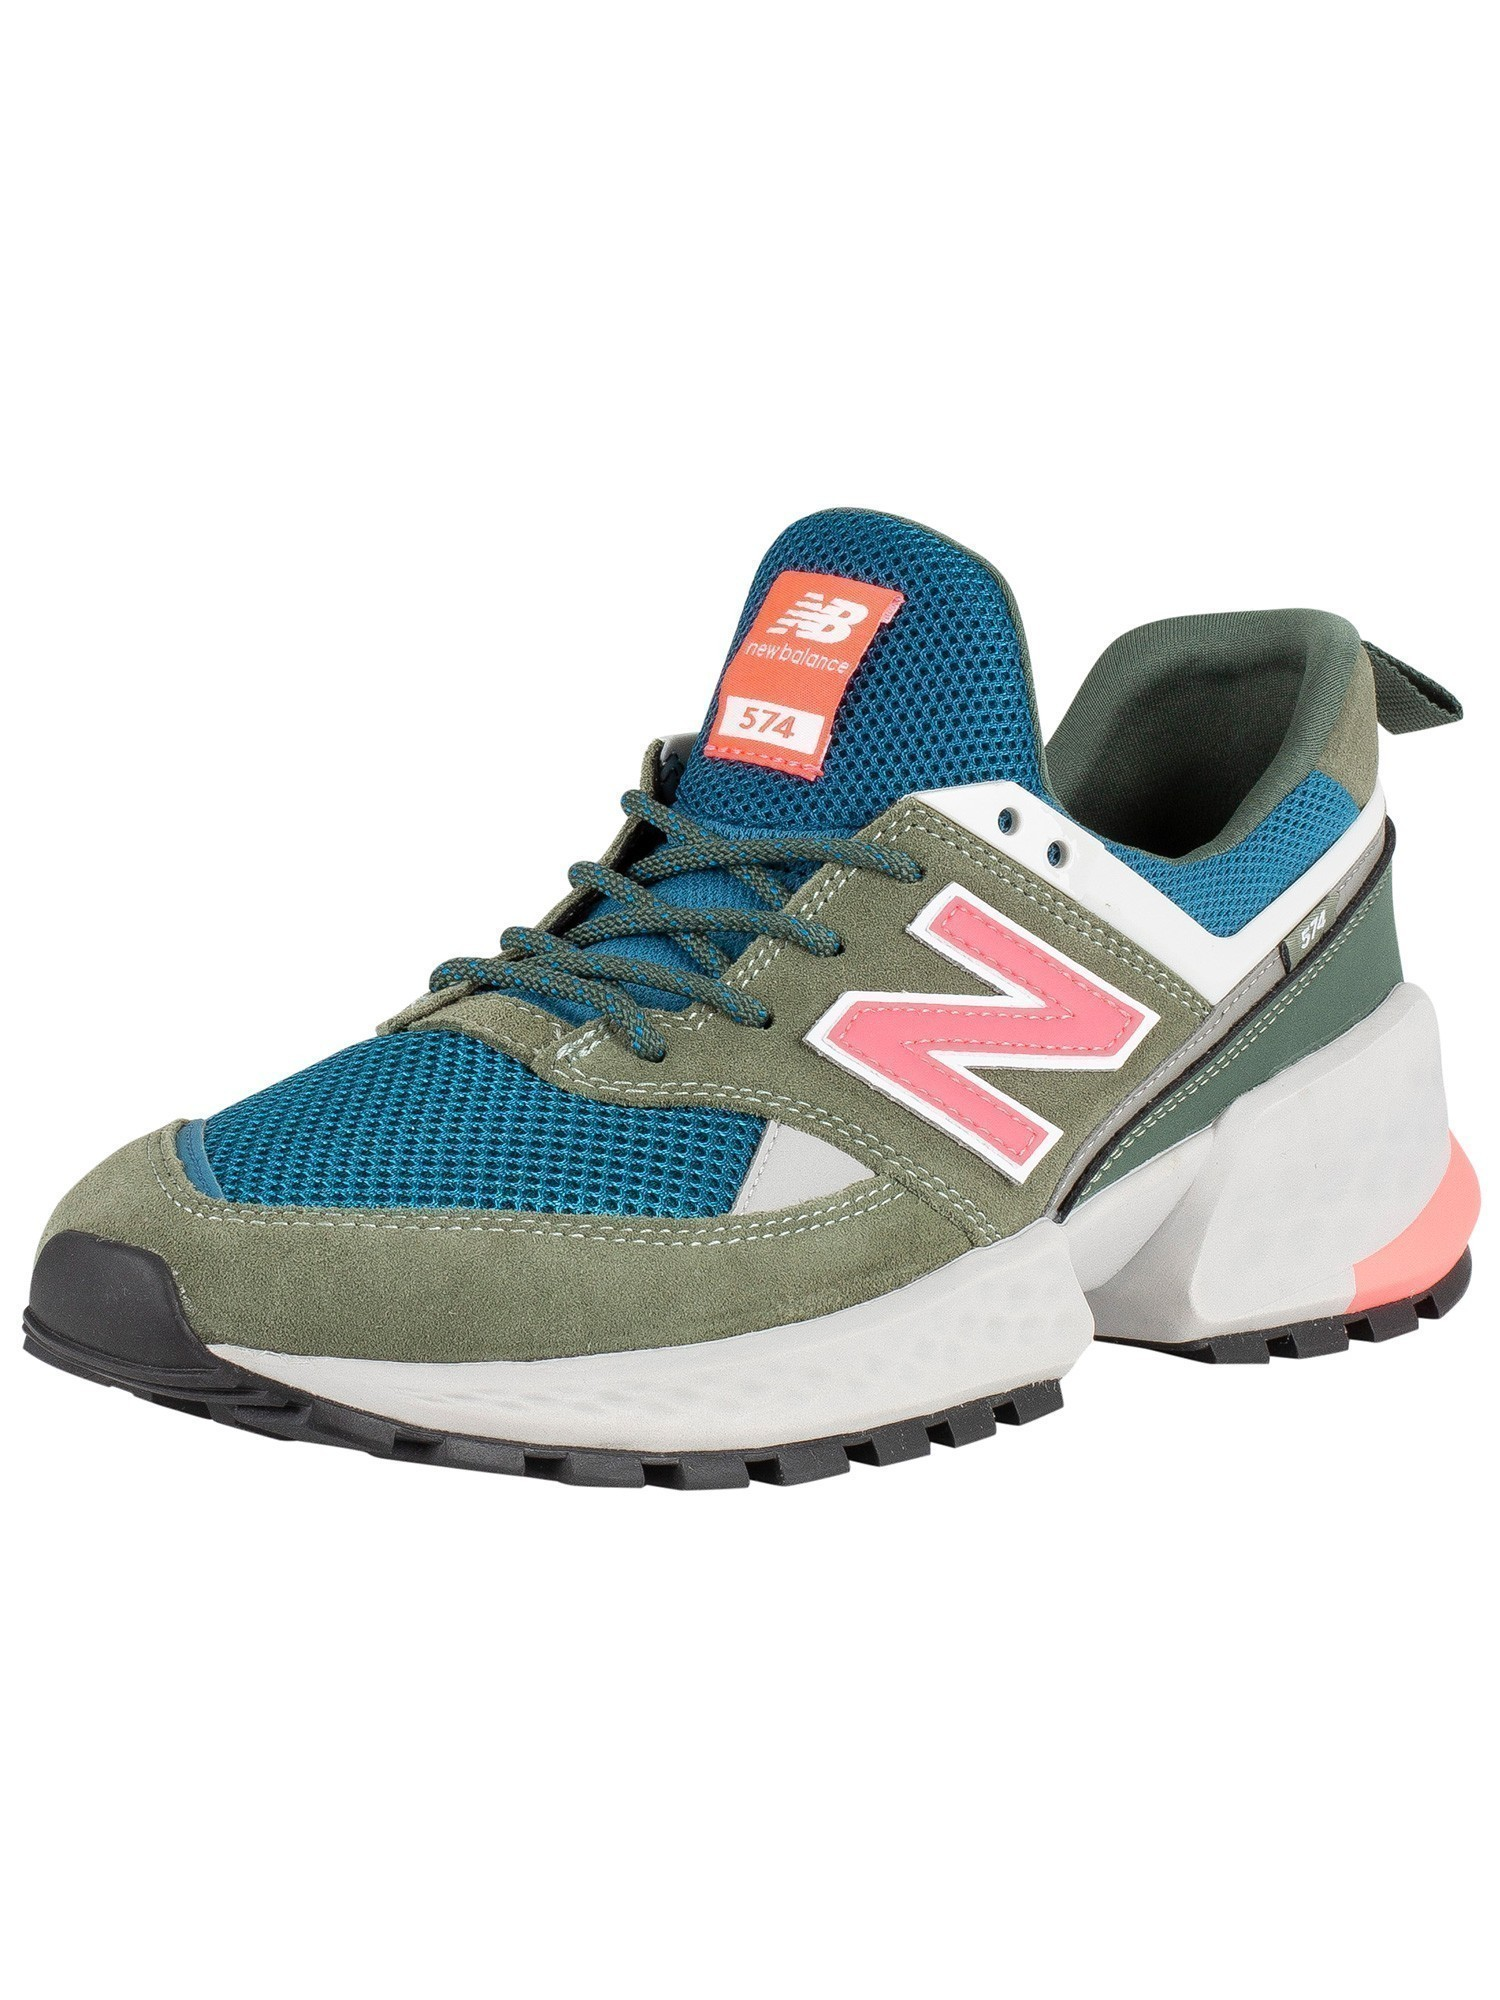 cheap for discount a4580 7454f New Balance 574 Sport Trainers - Green/Blue/Pink